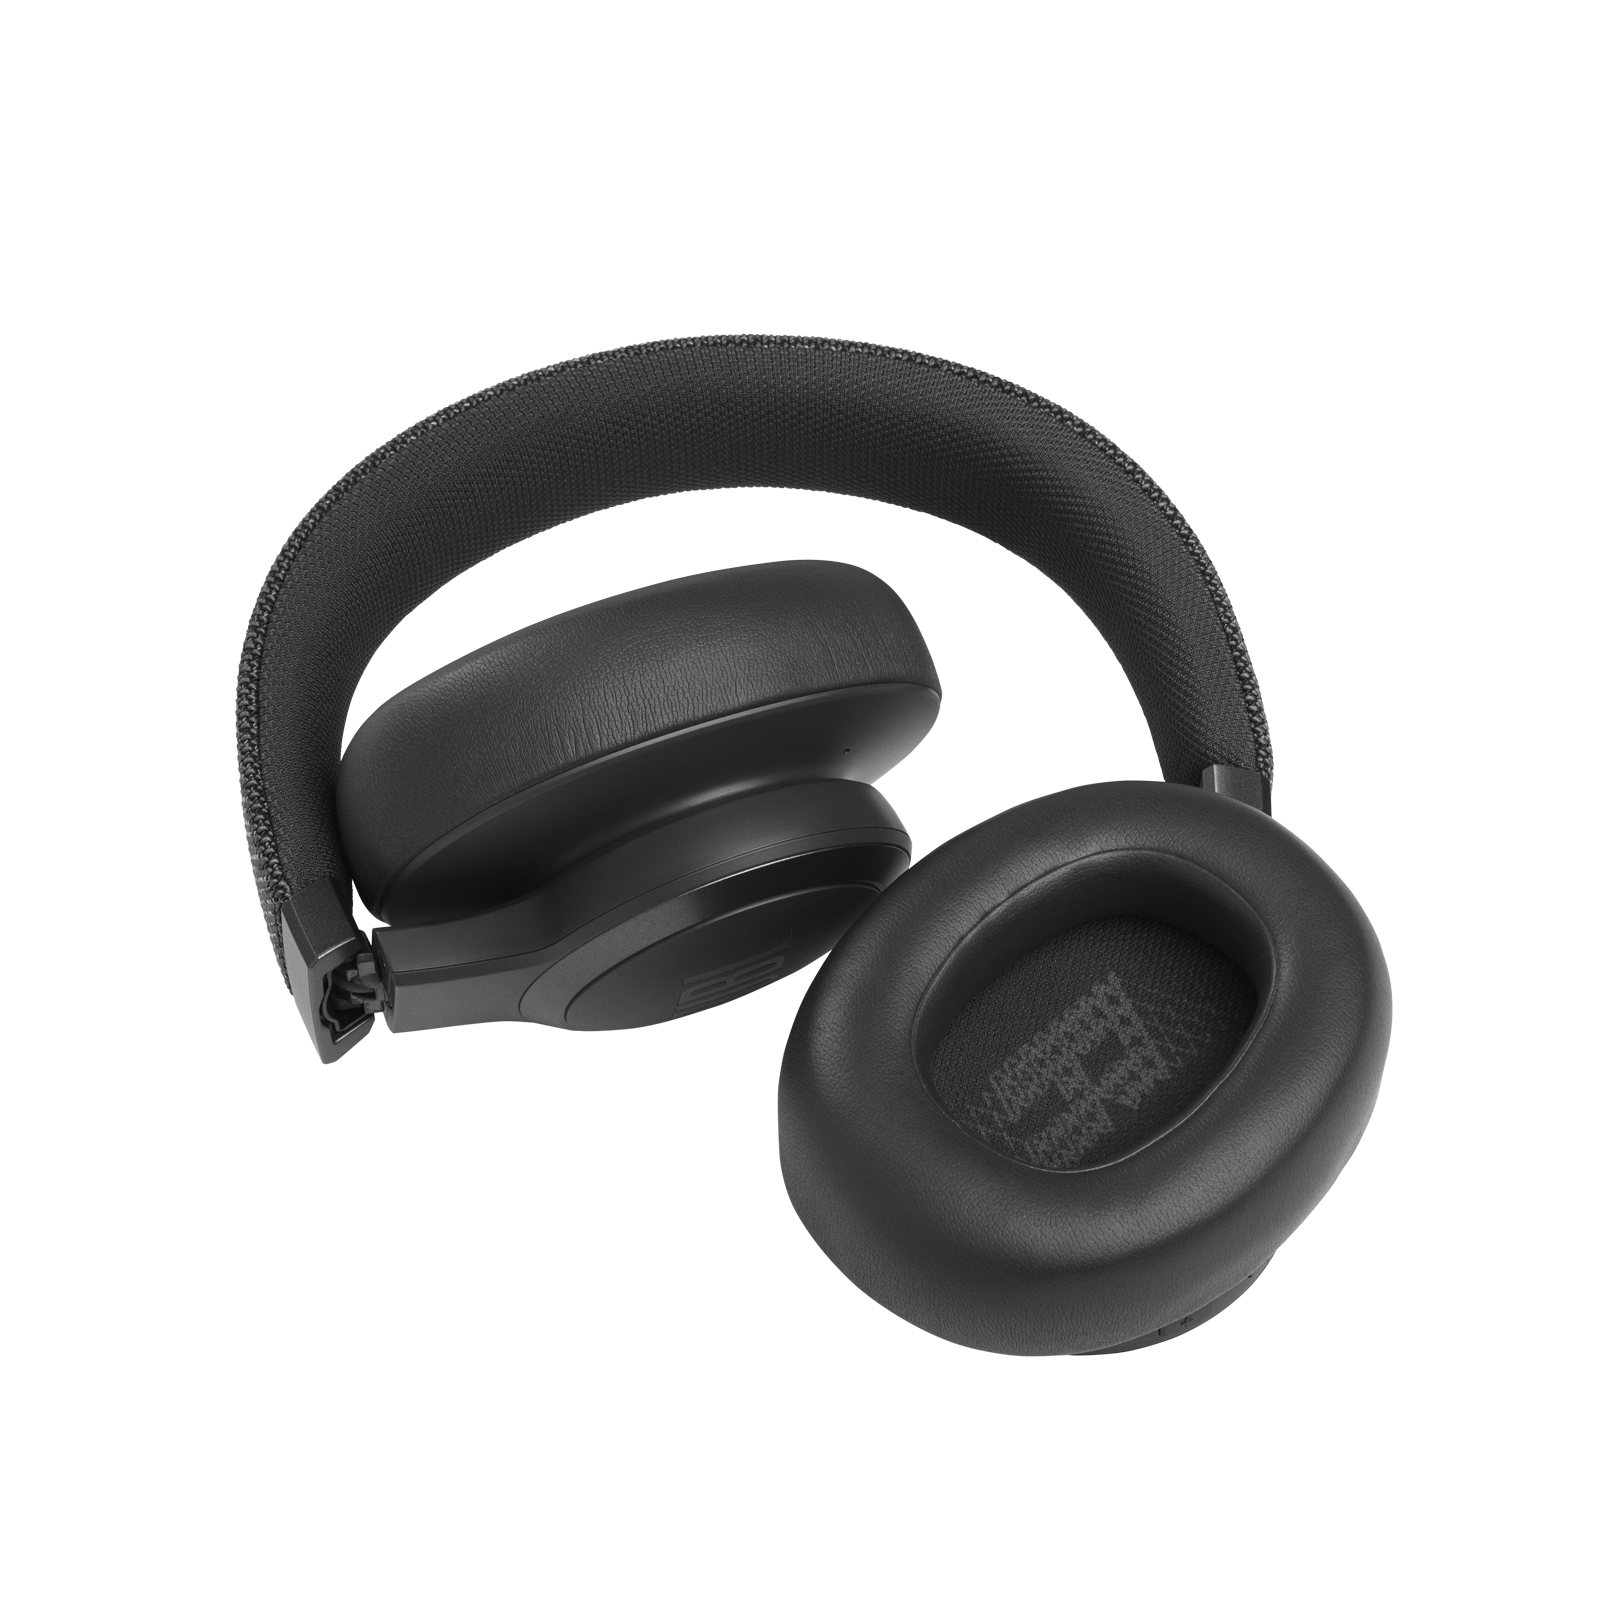 JBL Live 660NC - Black - WIRELESS OVER-EAR NC HEADPHONES - Detailshot 5